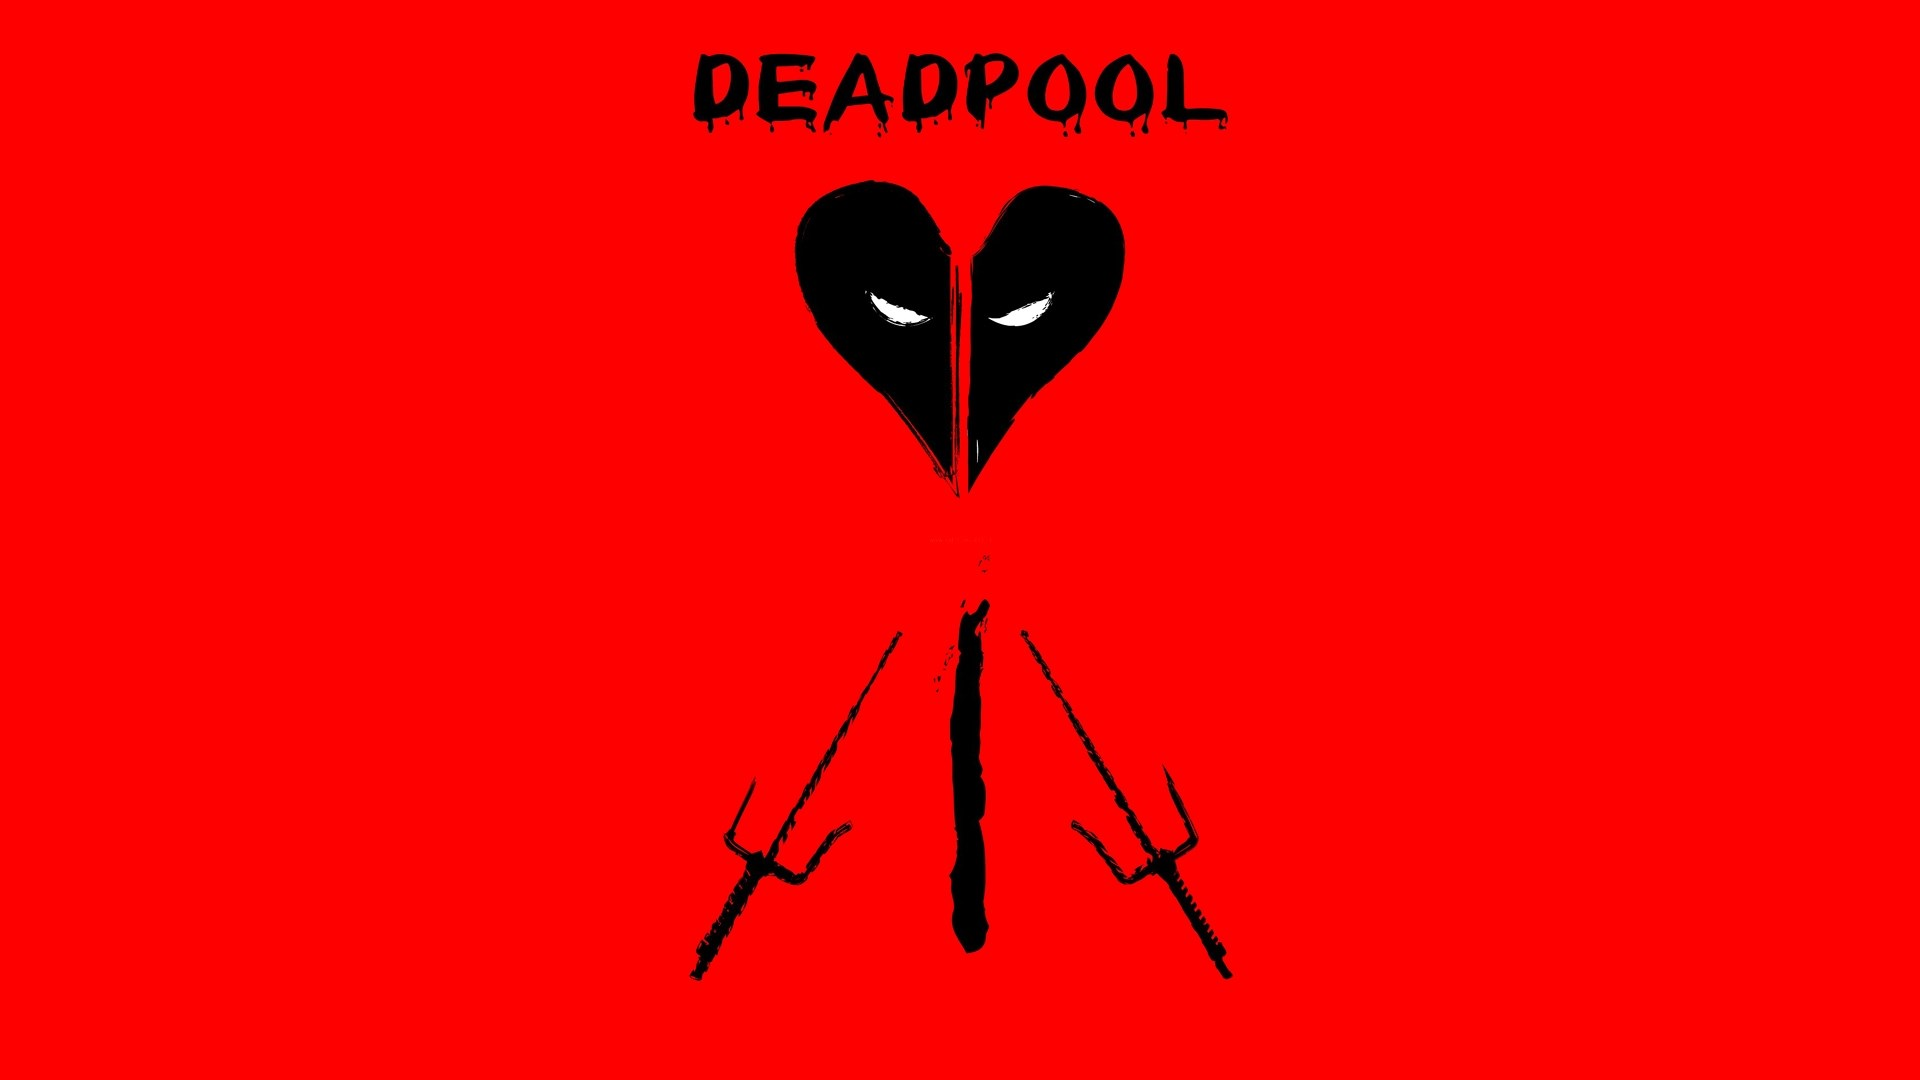 1920x1080-HQ-Definition-Desktop-deadpool-wallpaper-wpc900912